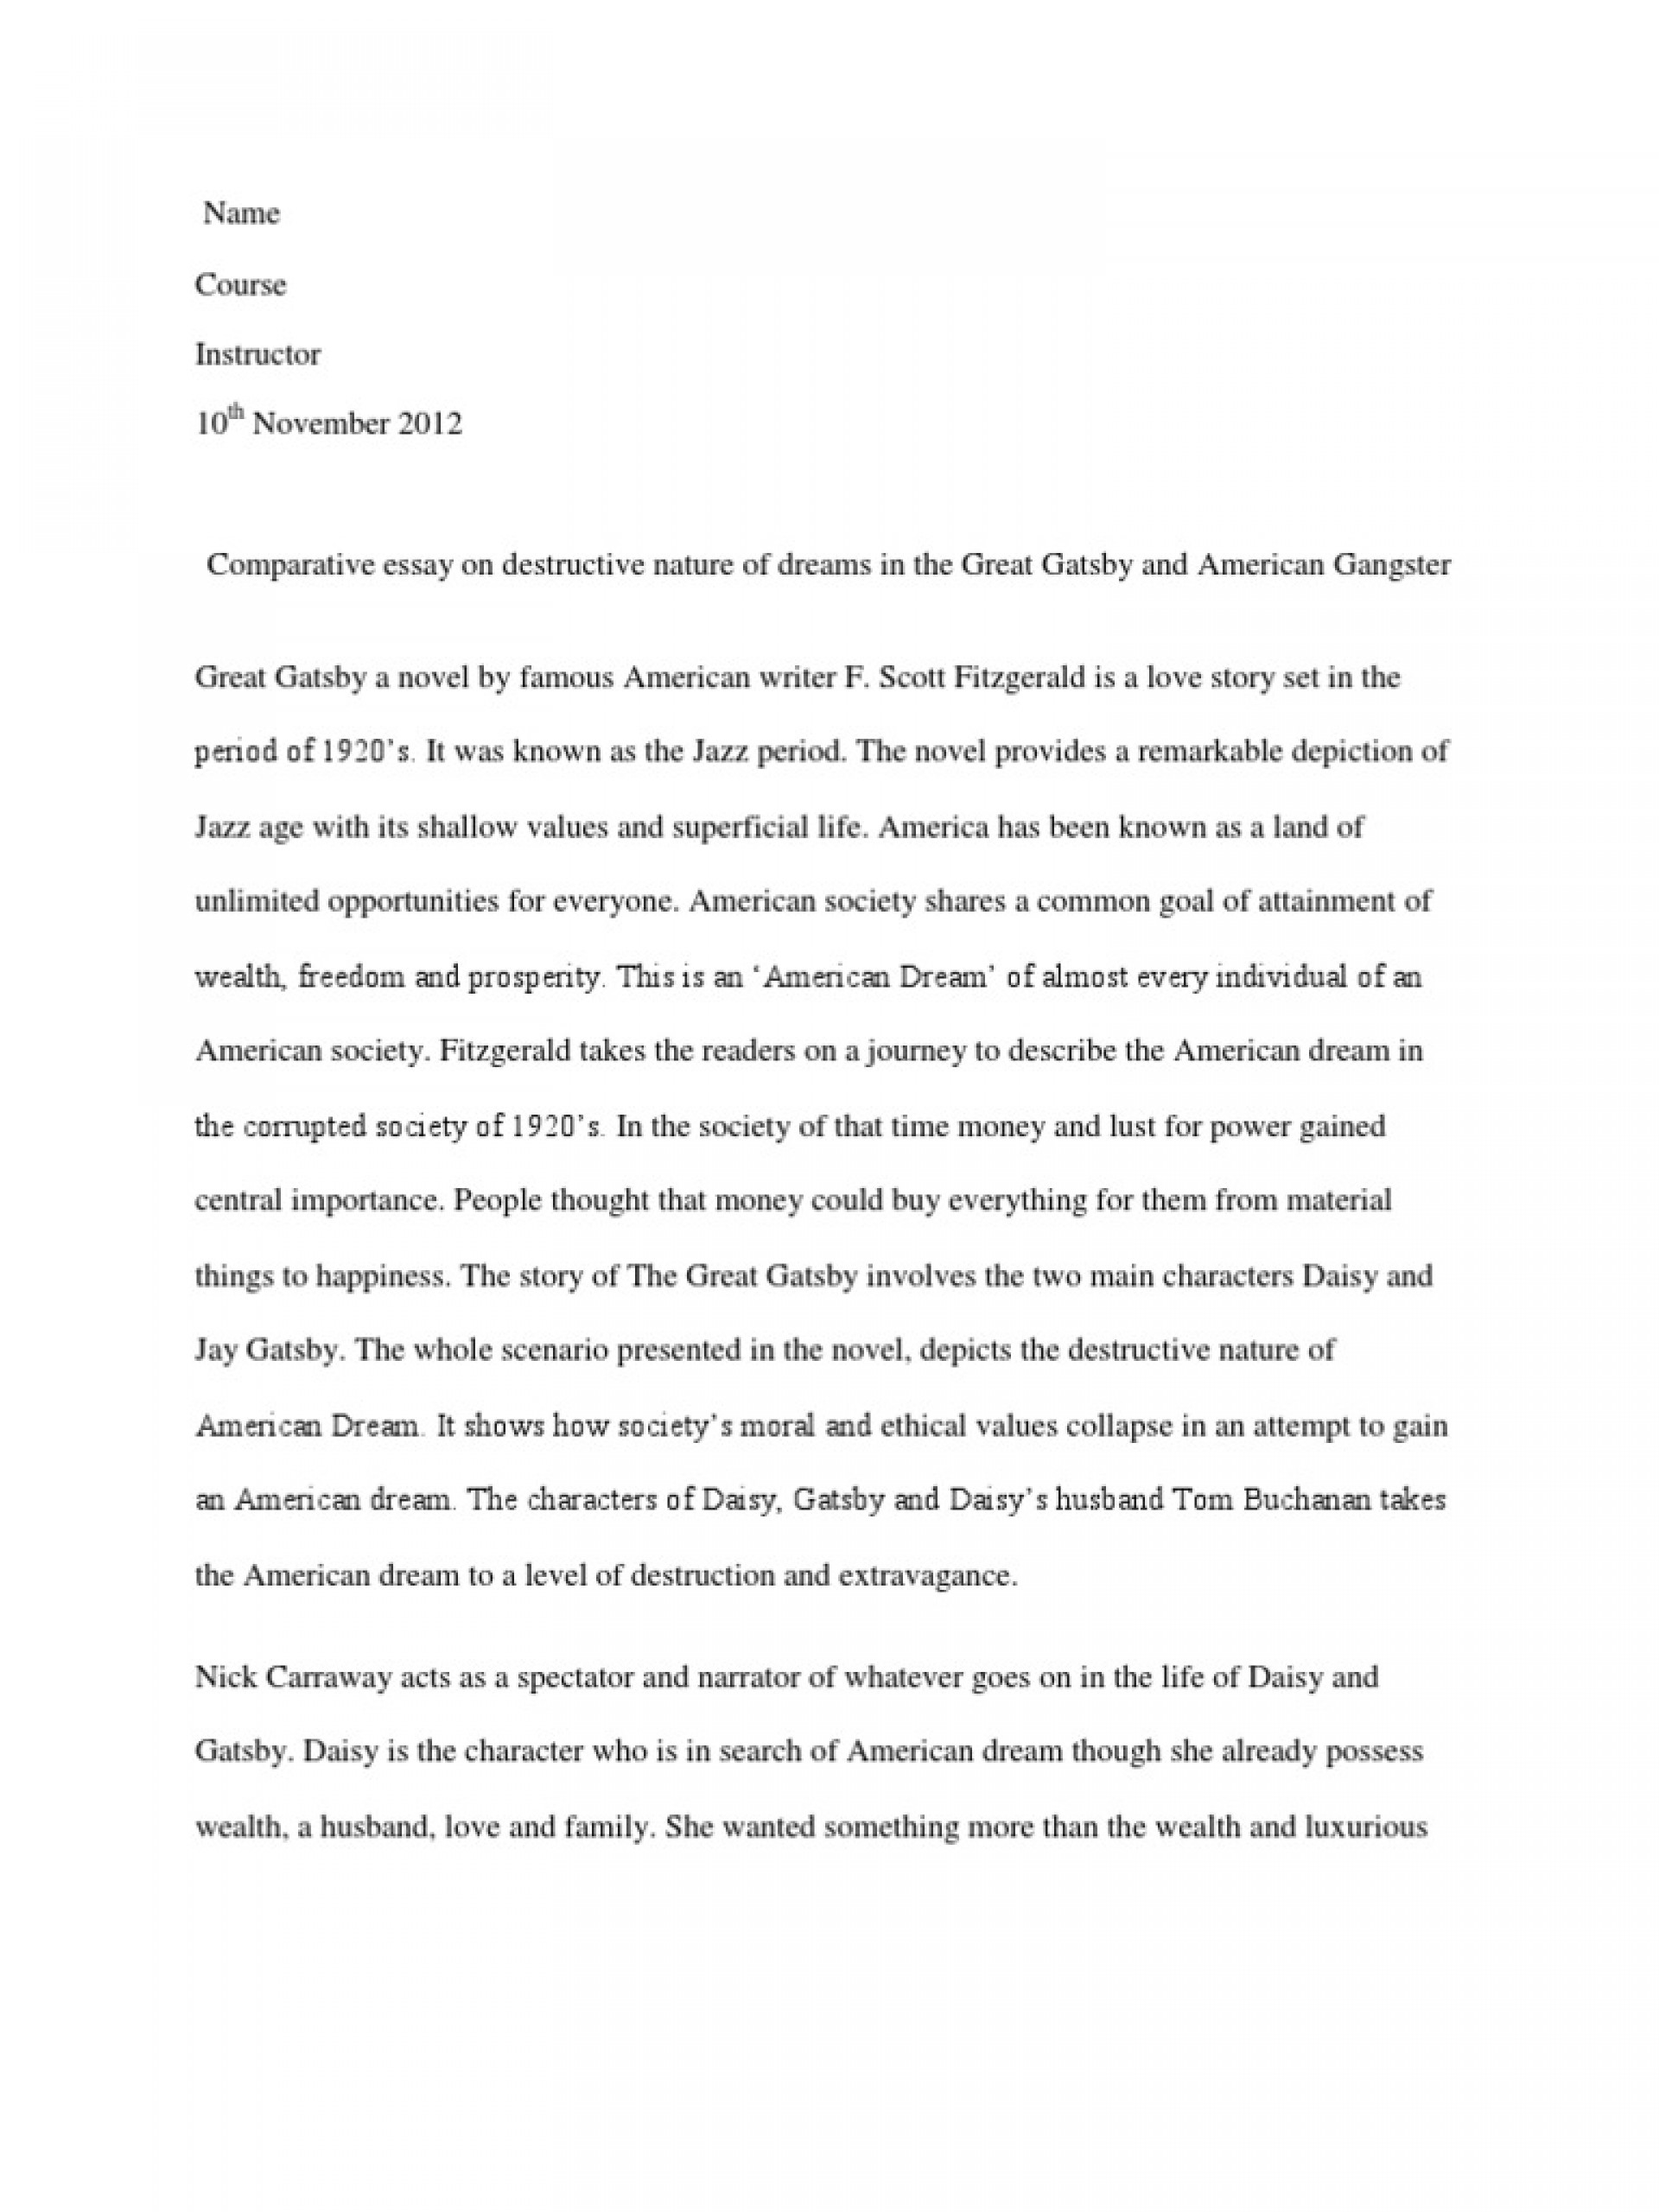 008 Comparative Essay On Destructive Nature Ofs  5884869ab6d87f259b8b49e2 Example American Unique Dream Conclusion Thesis Great Gatsby1920